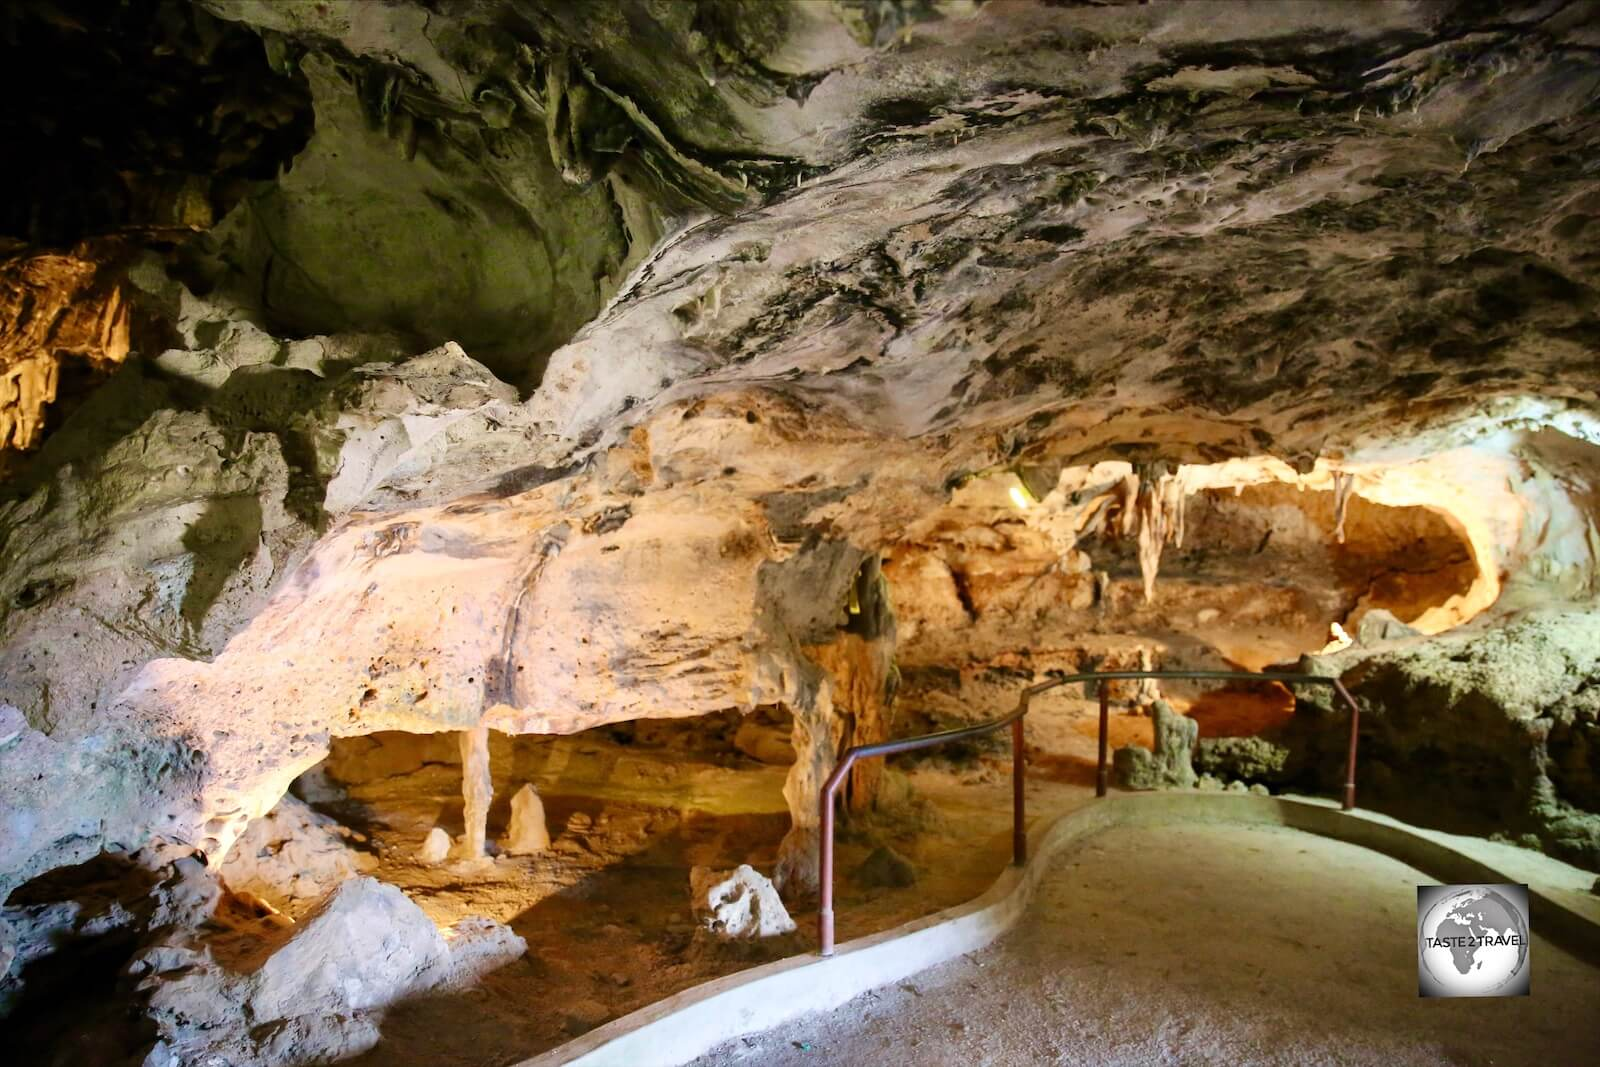 The interior of the Hato cave on Curaçao.